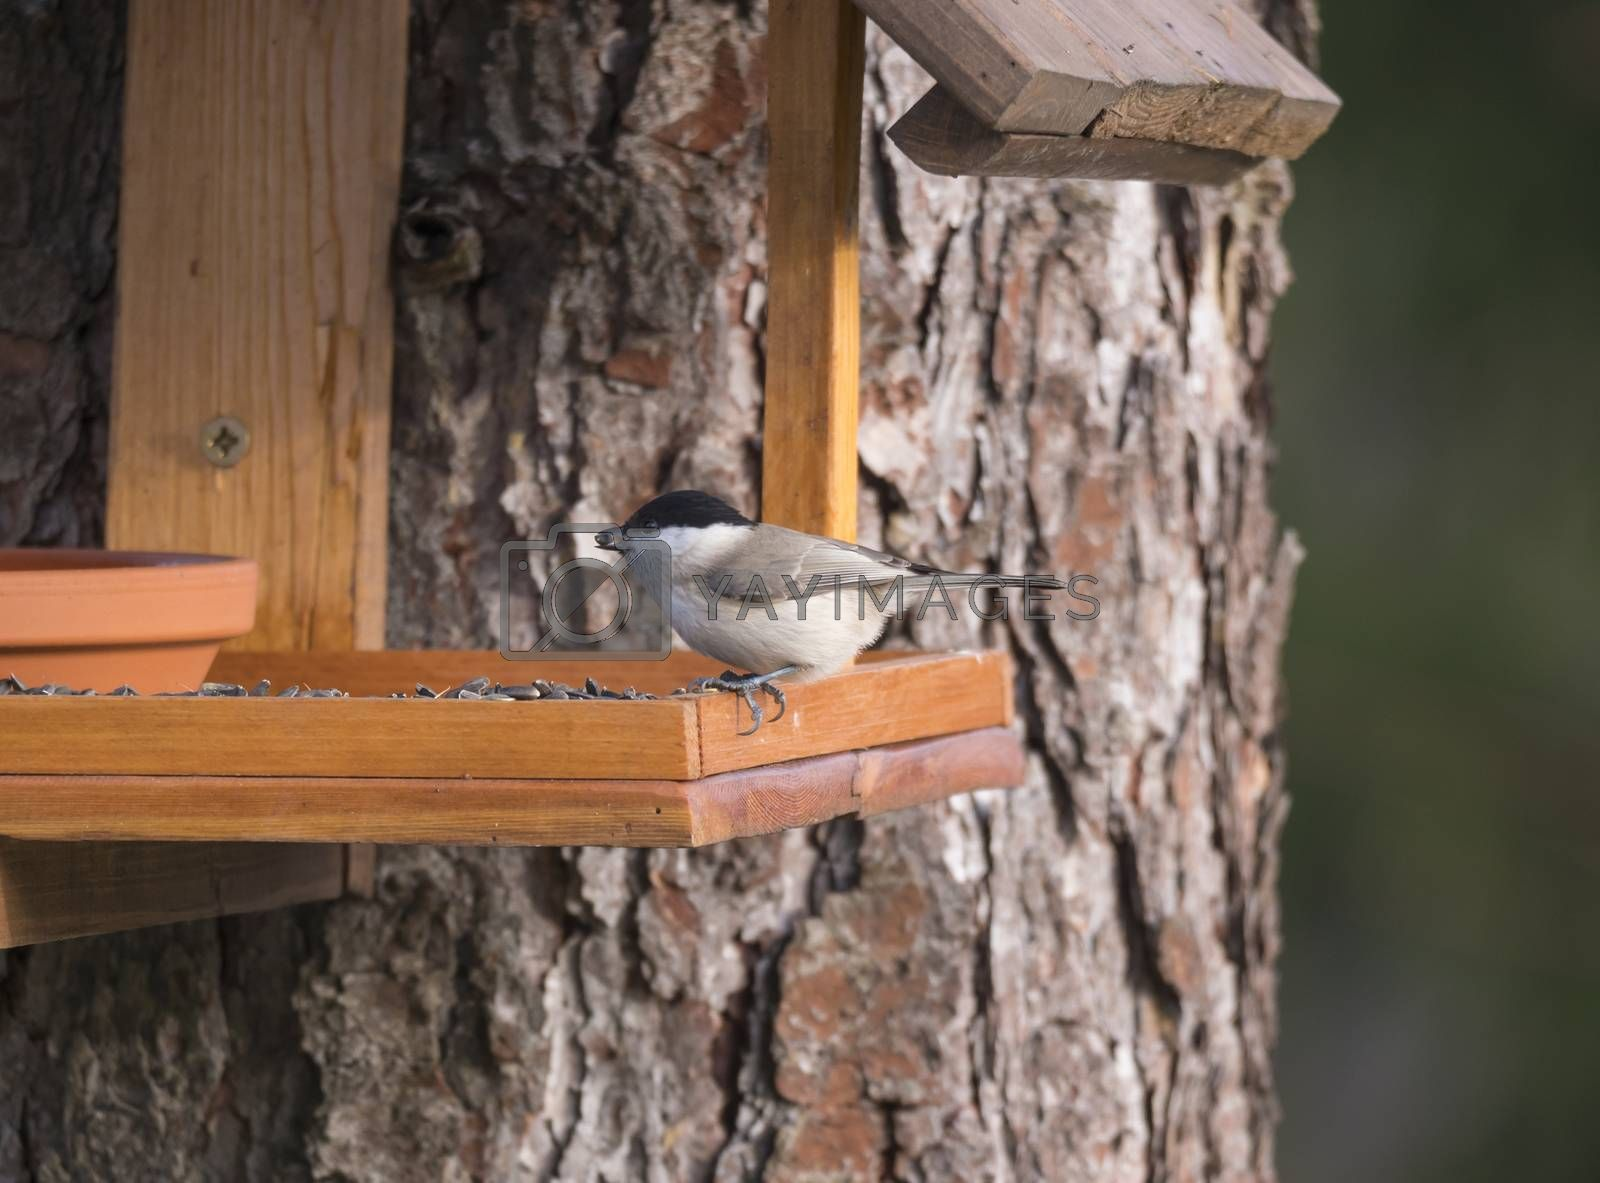 Close up Willow tit, Poecile montanus bird perched on the bird feeder table with sunflower seed. Bird feeding concept. Selective focus